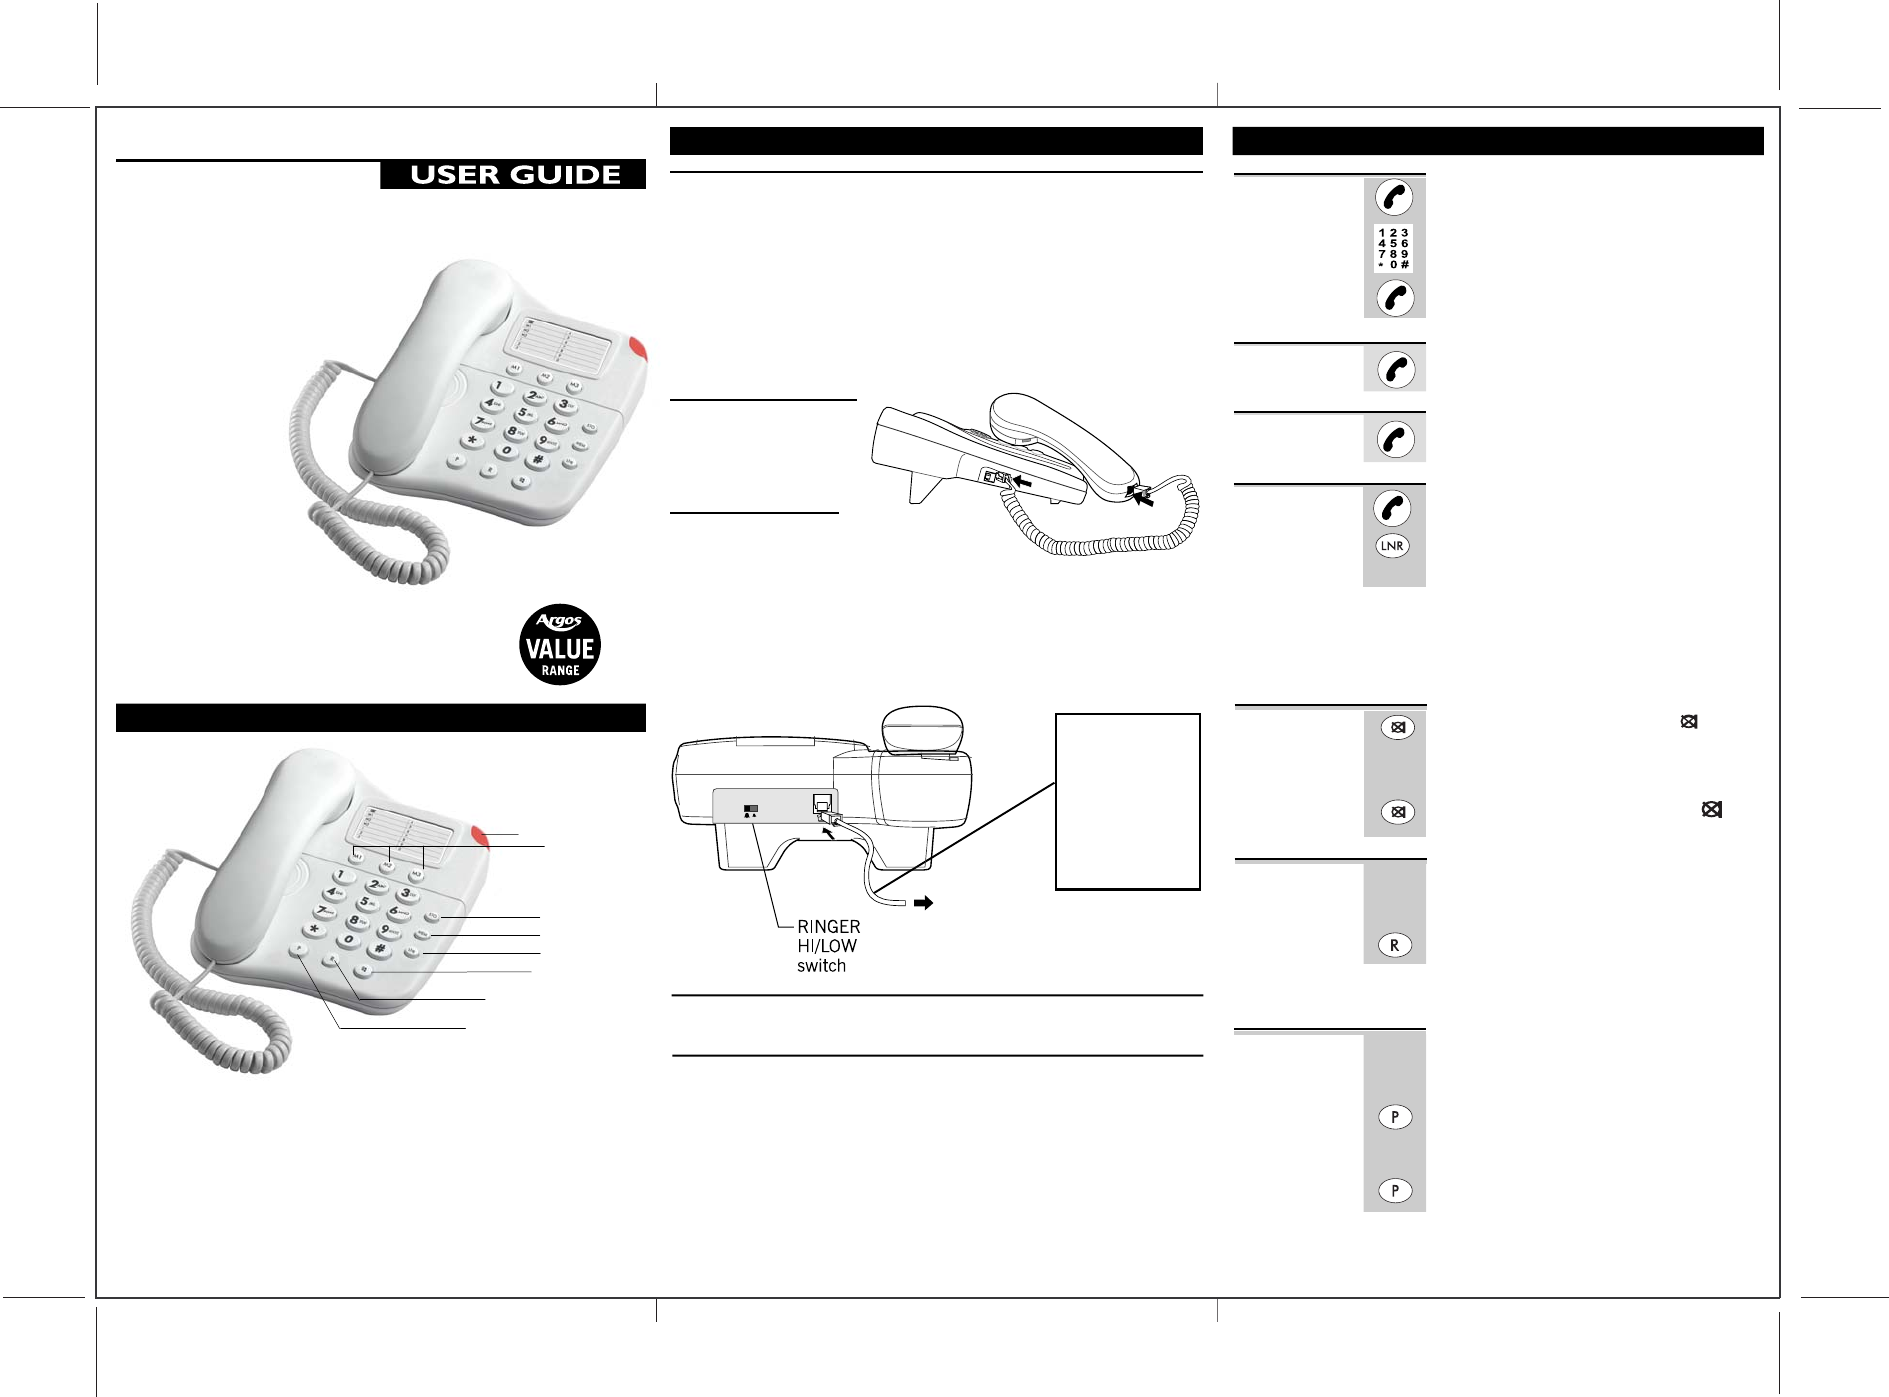 Argos Telephone Extension Wiring Diagram Rj11 Adsl And Phone Spirit 110 User Guide Manualsonline Com Dsl